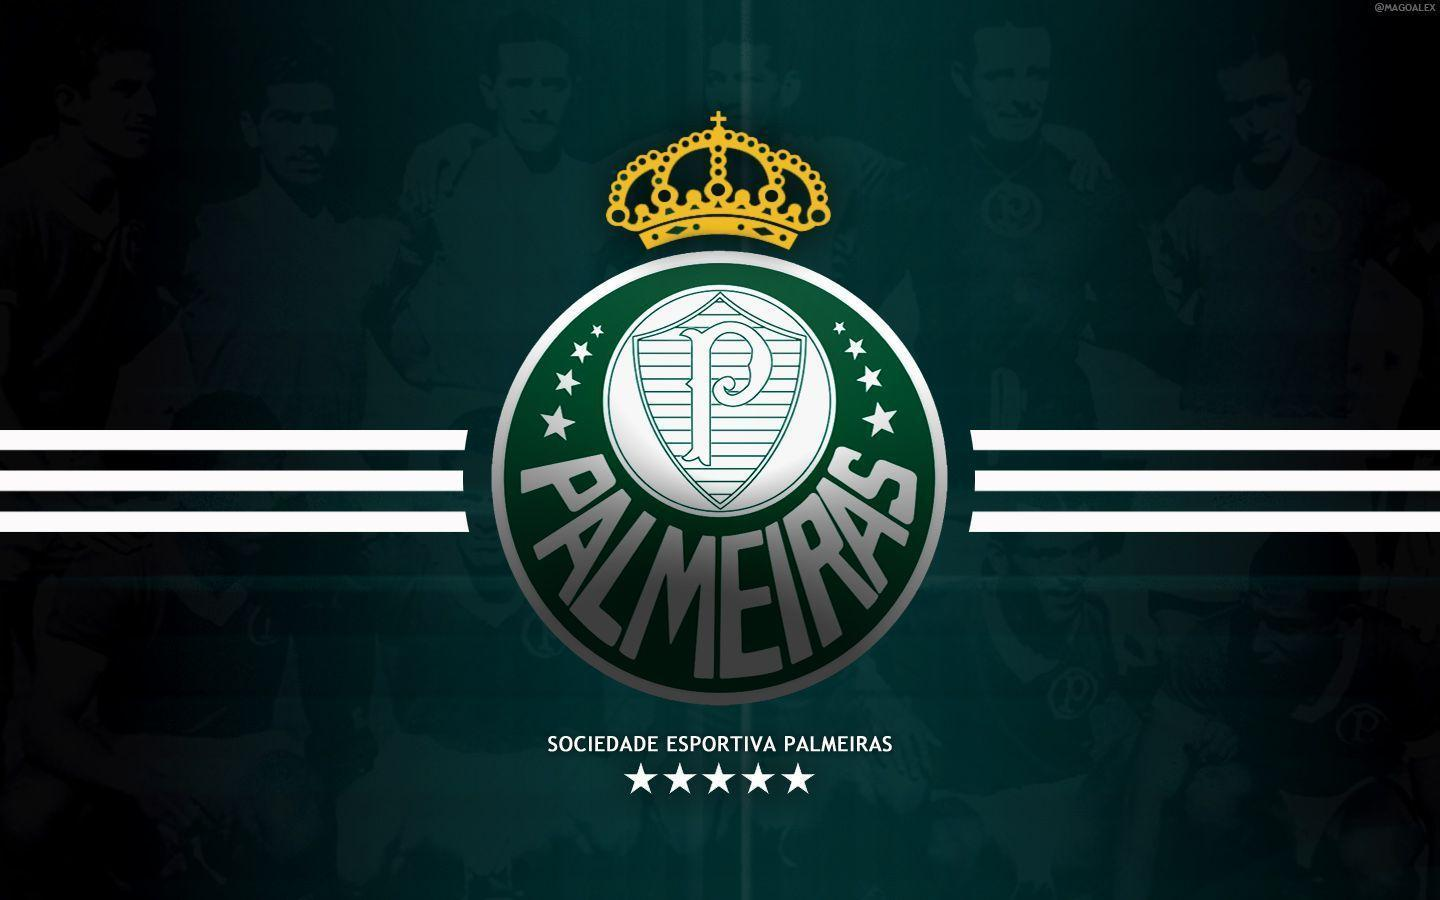 Palmeiras wallpapers download